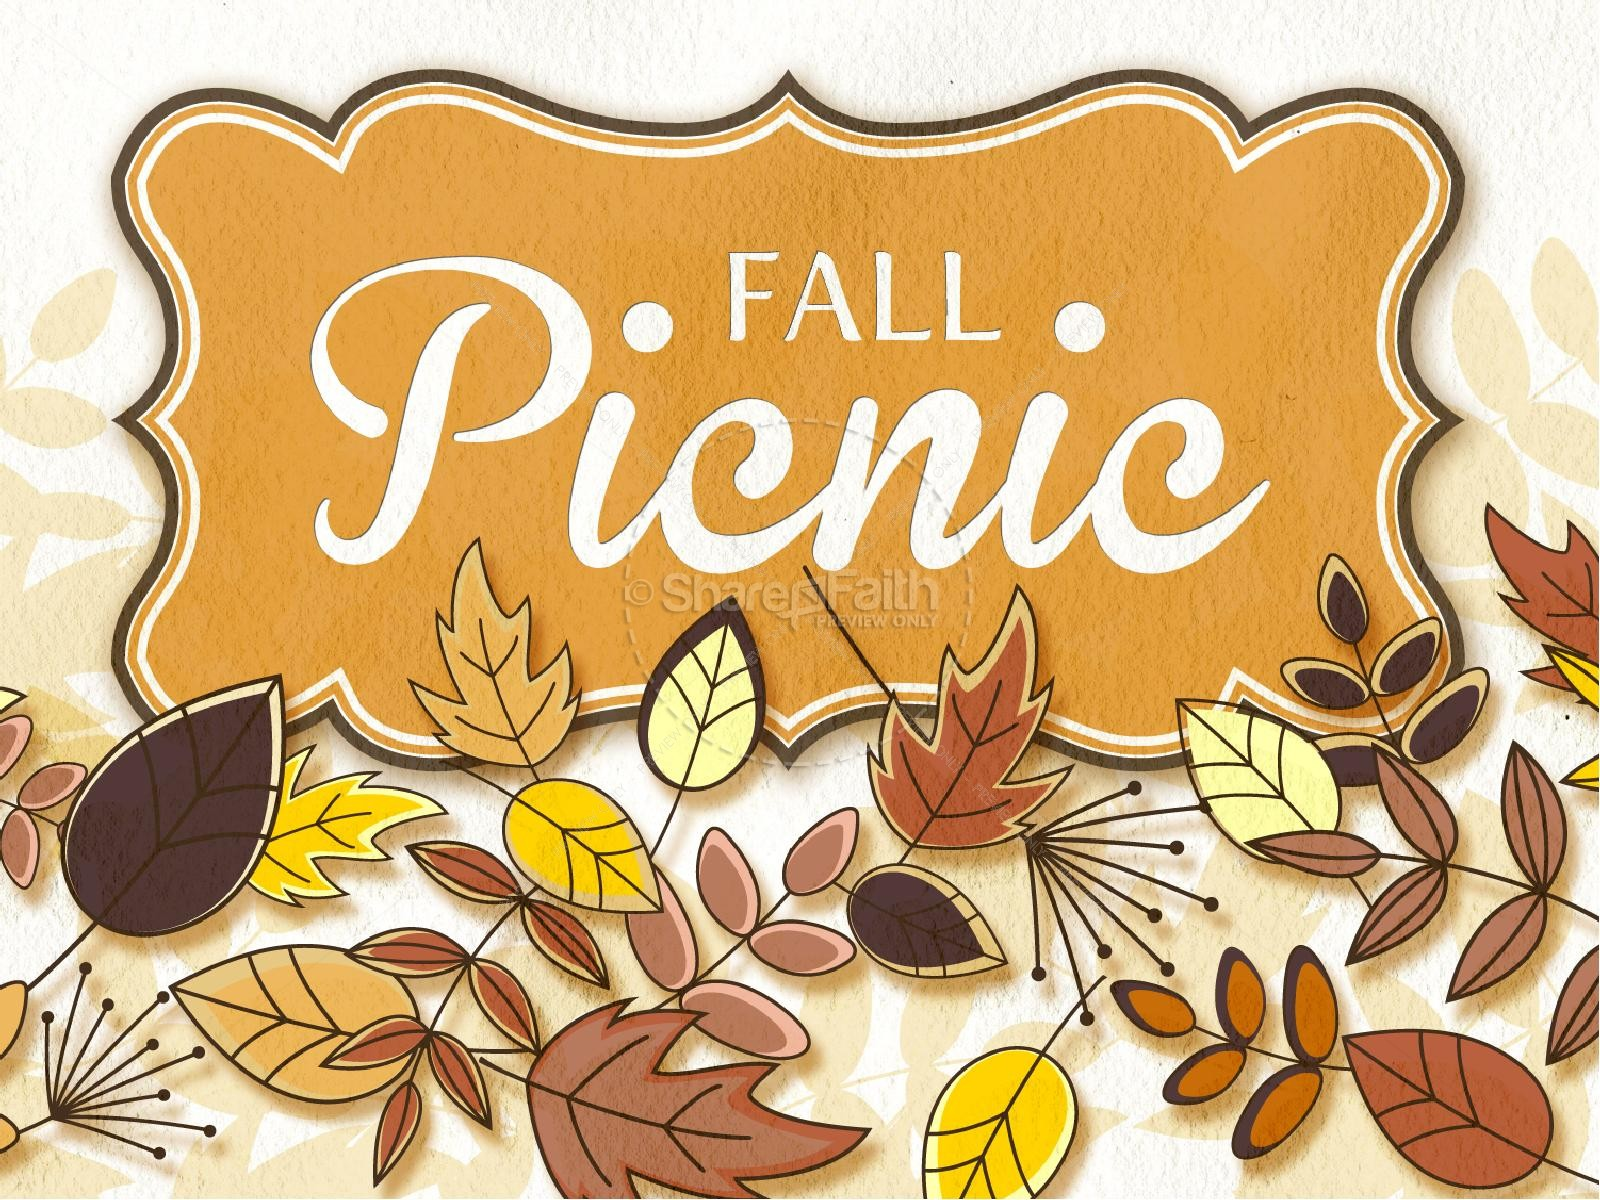 Picnic clipart save the date #14